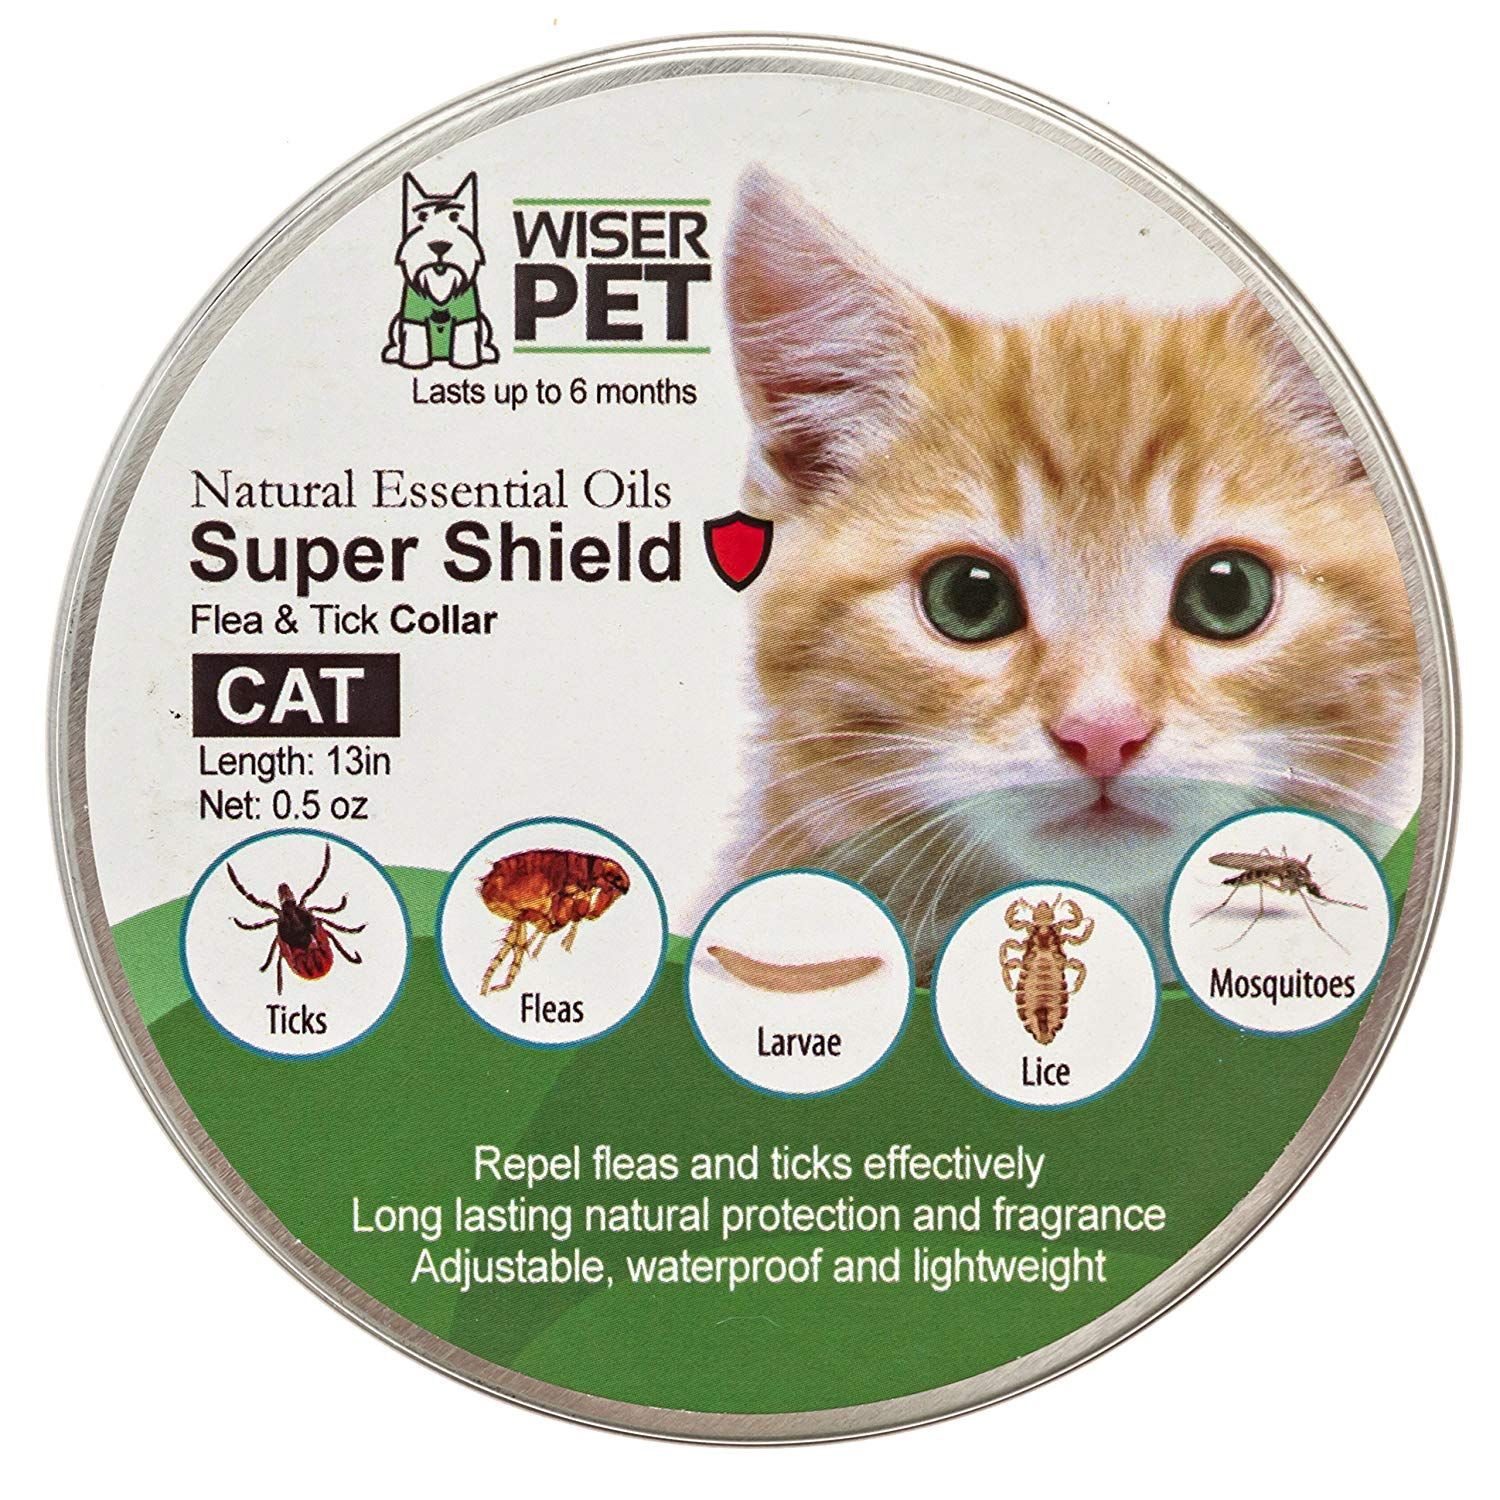 Natural Cat Flea Collar Enjoy Up To 6 Months All Natural Protection For Your Pet From Fleas Ticks And Other Bugs And I Cat Flea Collar Cat Fleas Natural Cat